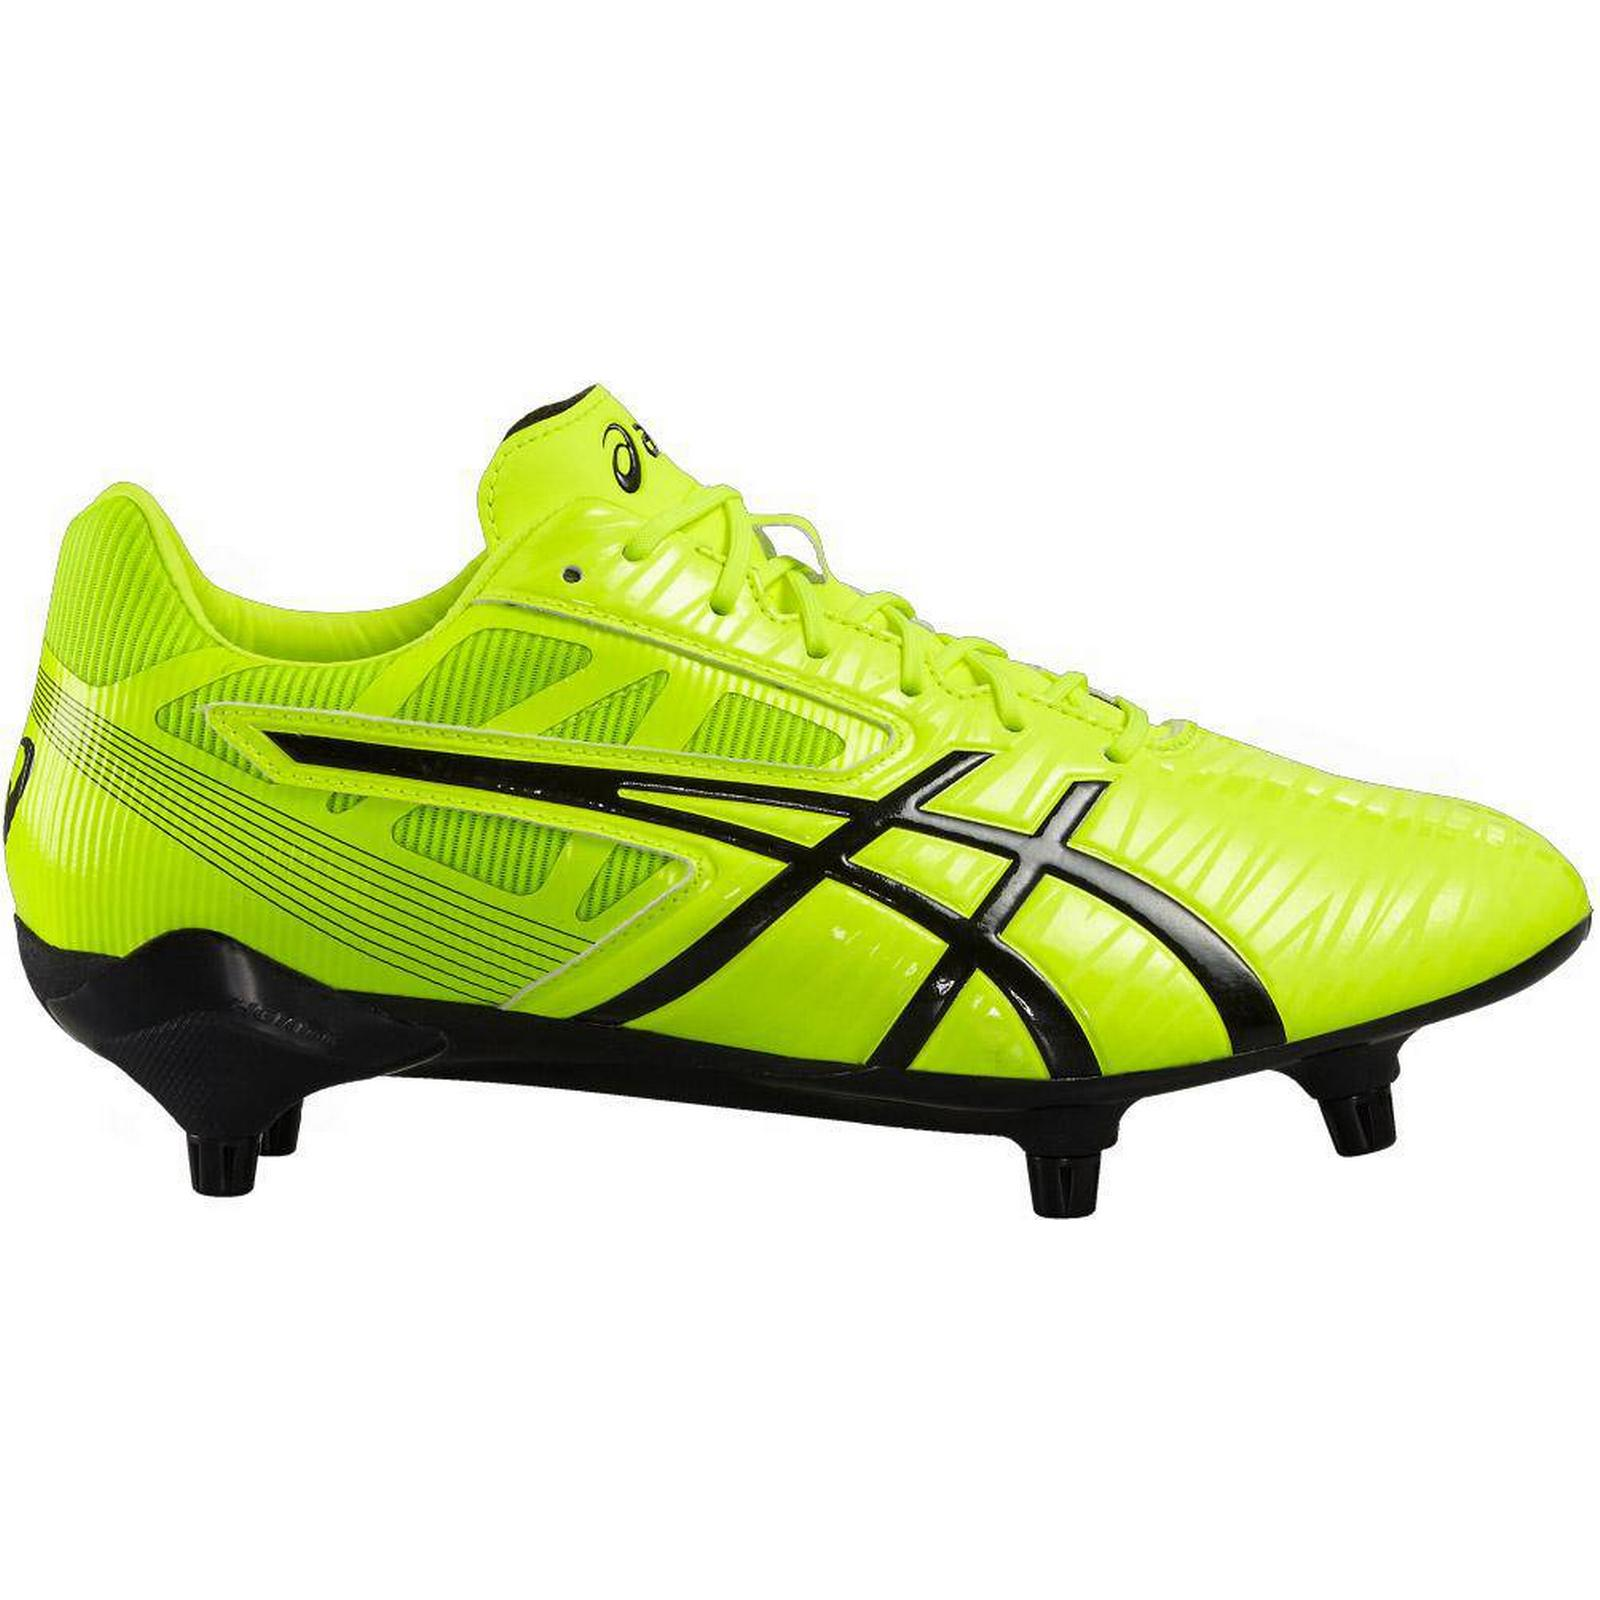 Rugby Factory Shop Boots Asics Gel-Lethal Speed Rugby Boots Shop Safety Yellow/Black #UK 10.5 5cc662